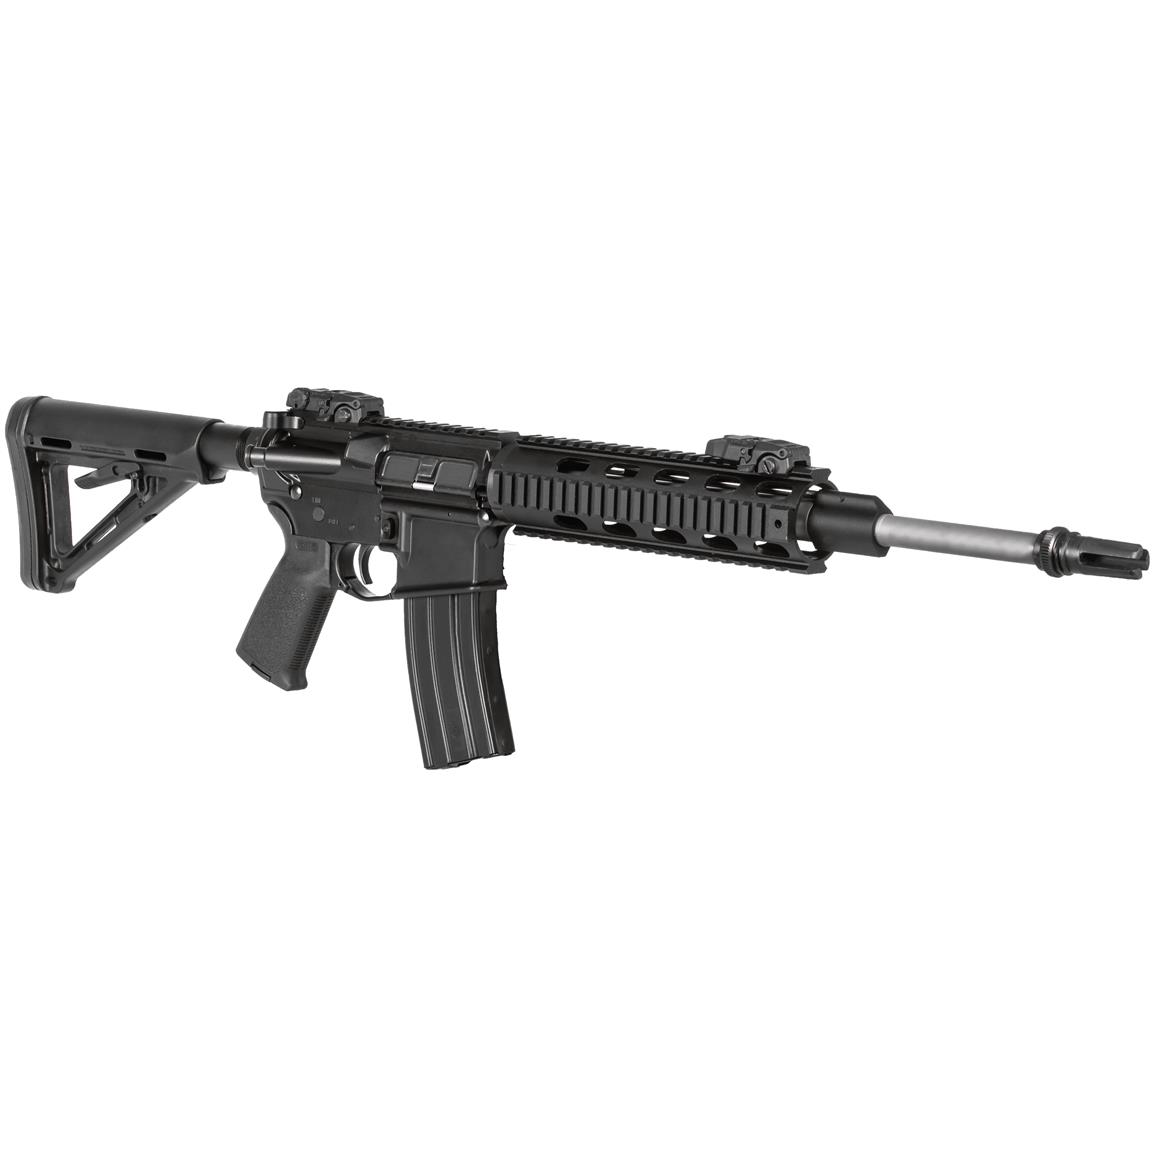 "DPMS Recon AR-15, Semi-Automatic, 5.56 NATO/.223 Remington, 16"" Stainless Heavy Barrel, 30+1 Rounds"